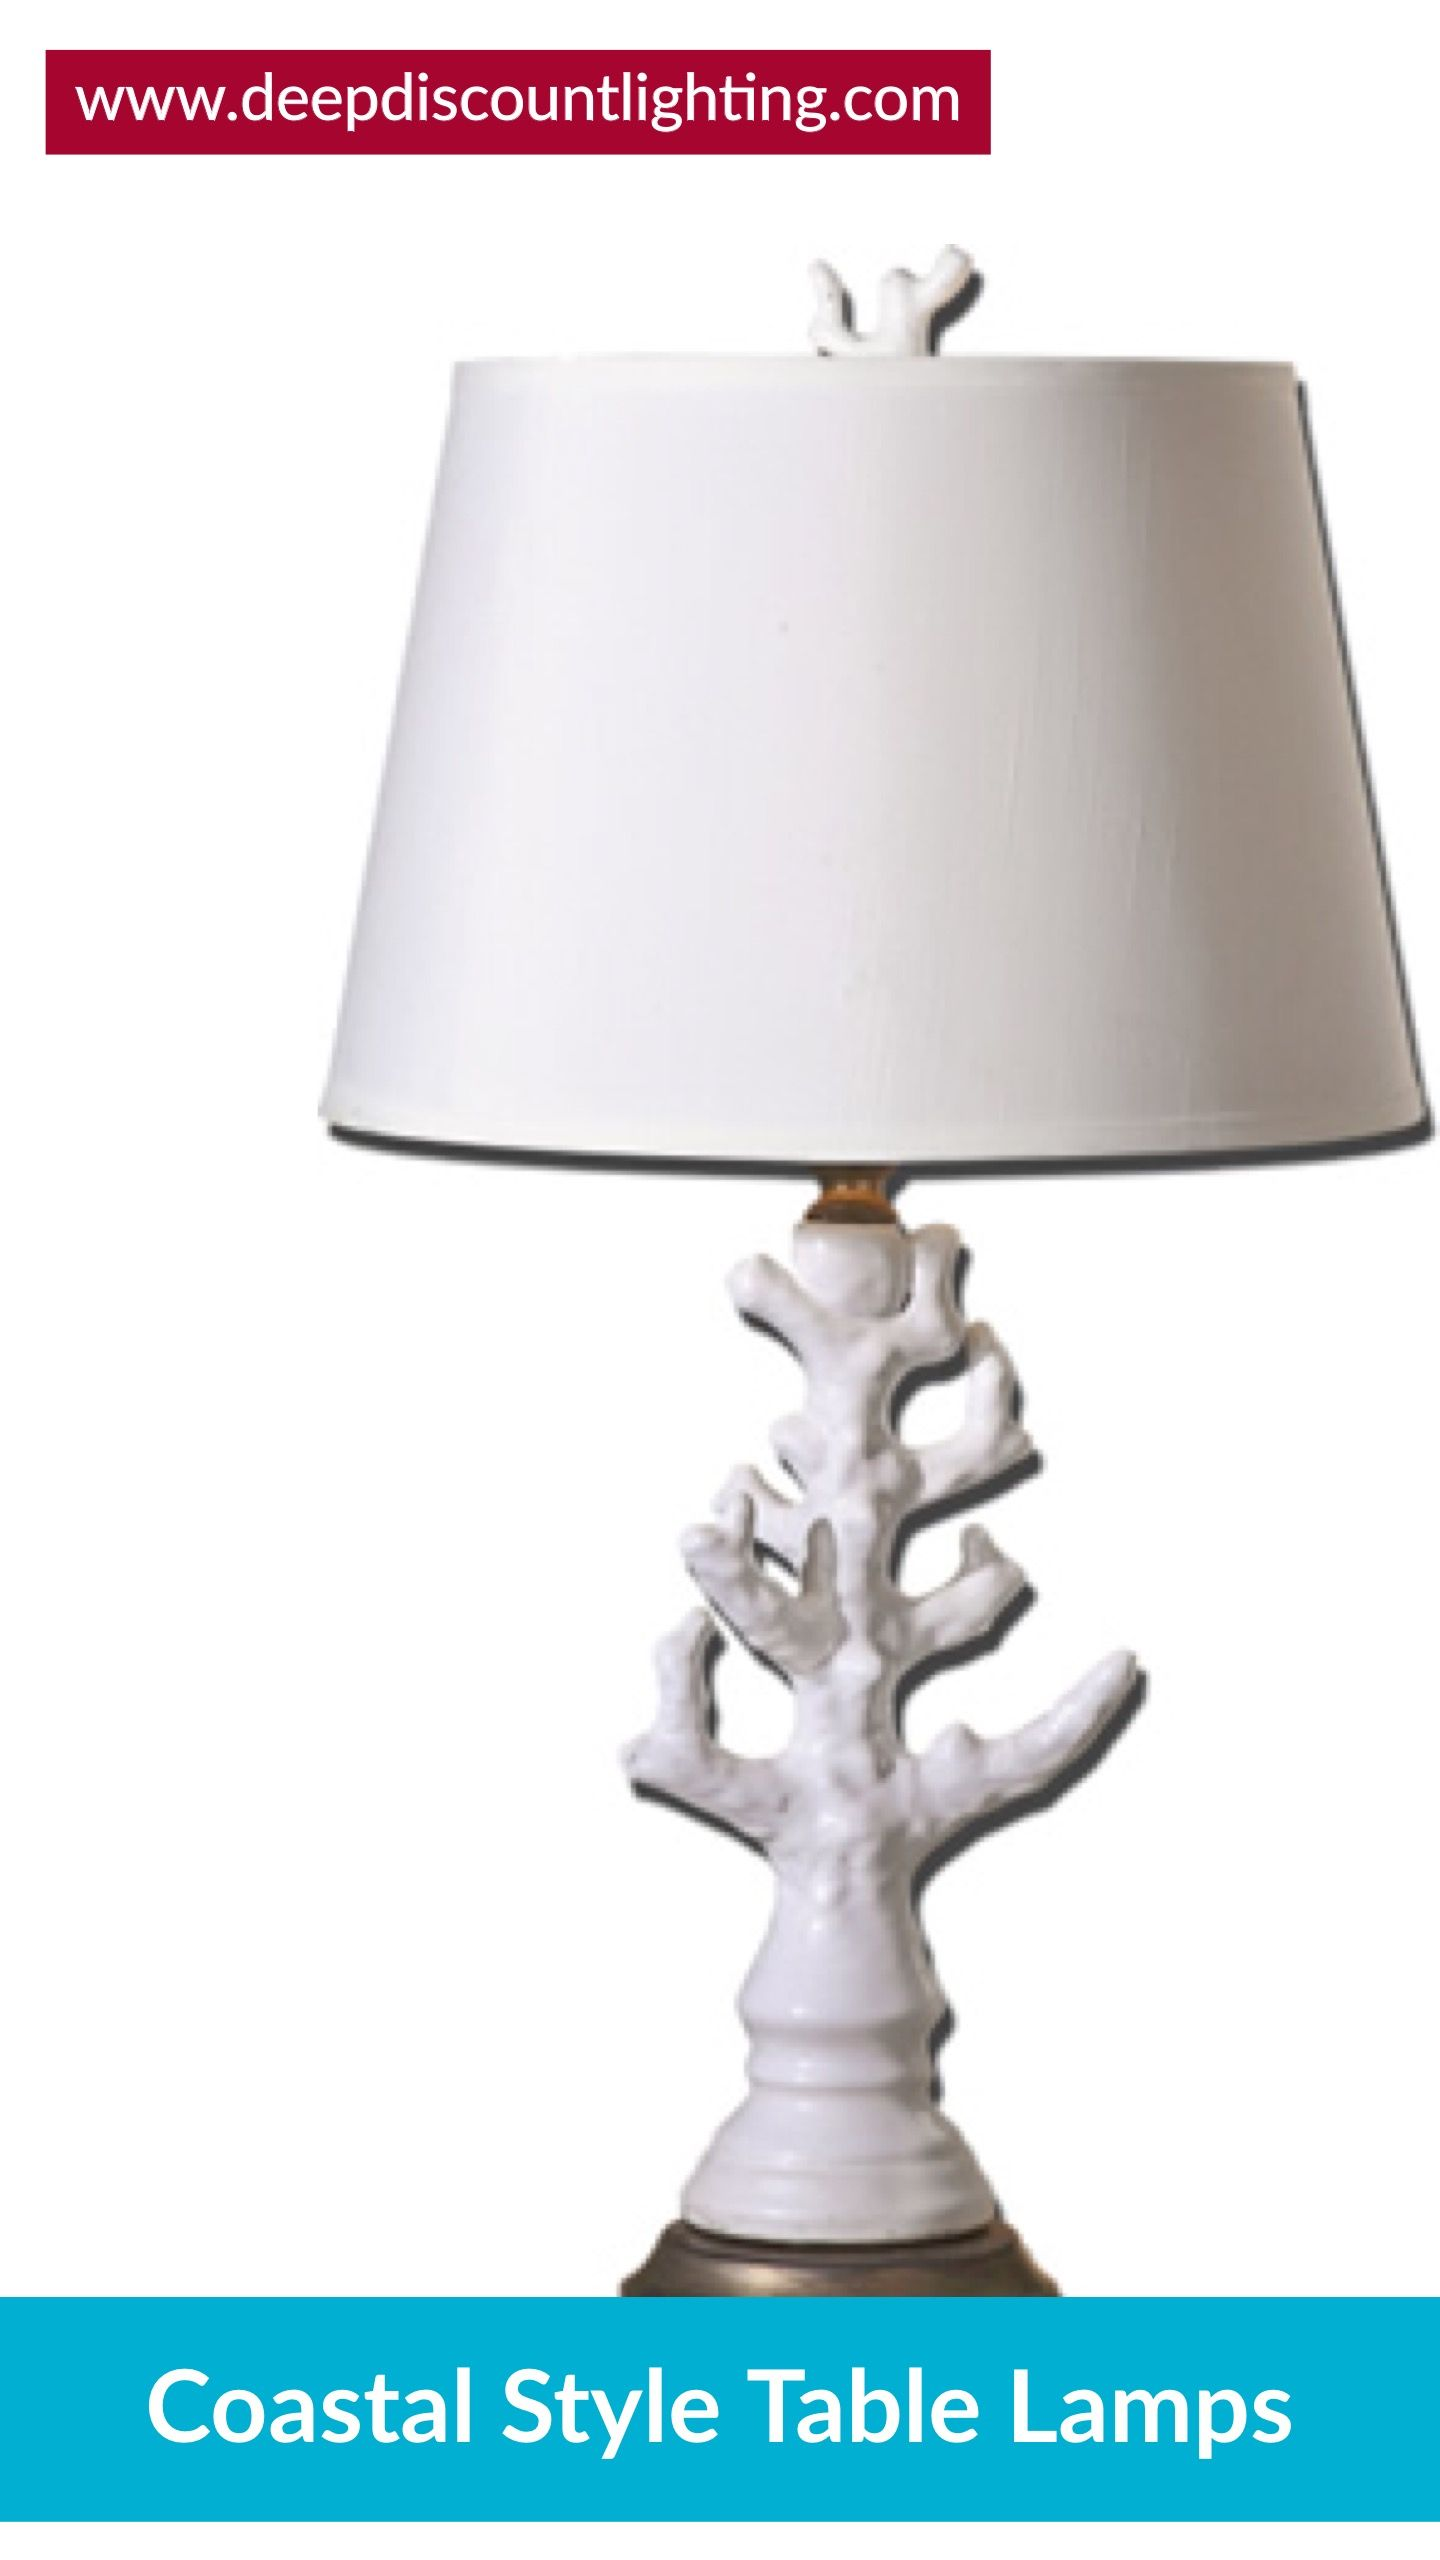 Coastal Style Table U0026 Floor Lamps Coastal Living With These Table Lamps  That Incorporate Driftwood, Shells And Coral Or Reflect Ocean Motifs.